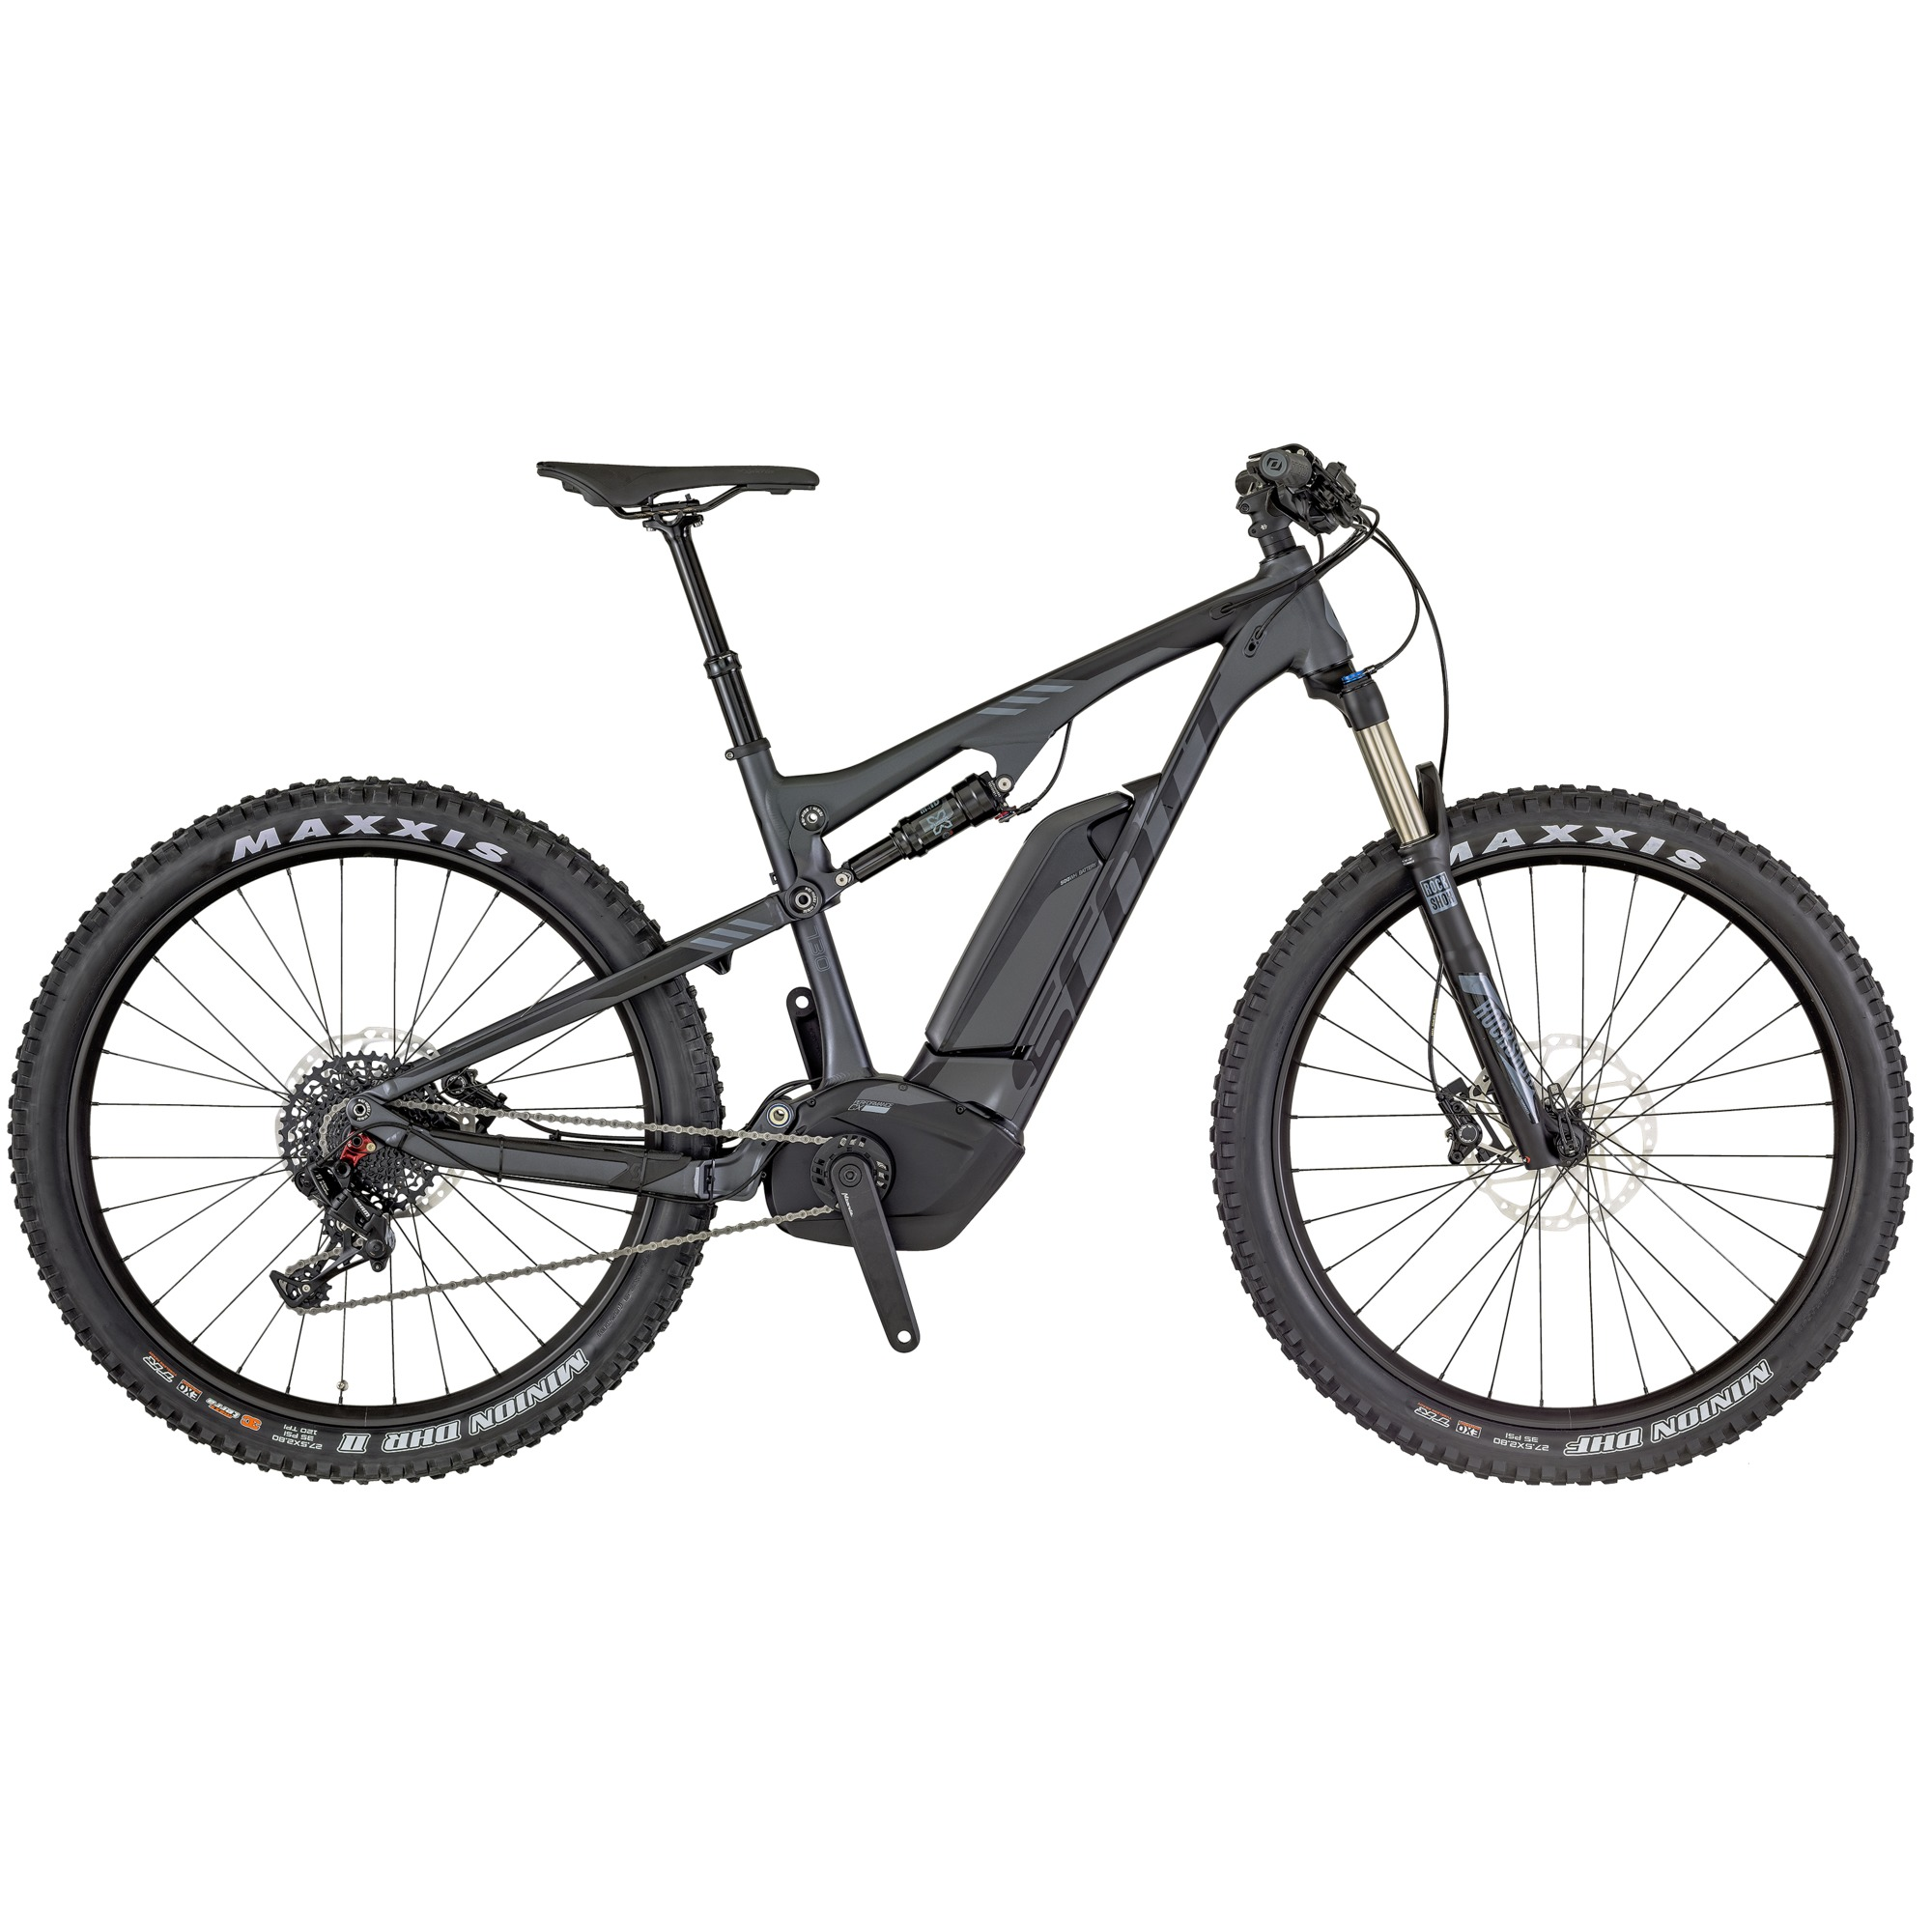 SCOTT E-Genius 730 Bike XL - Zweirad Homann